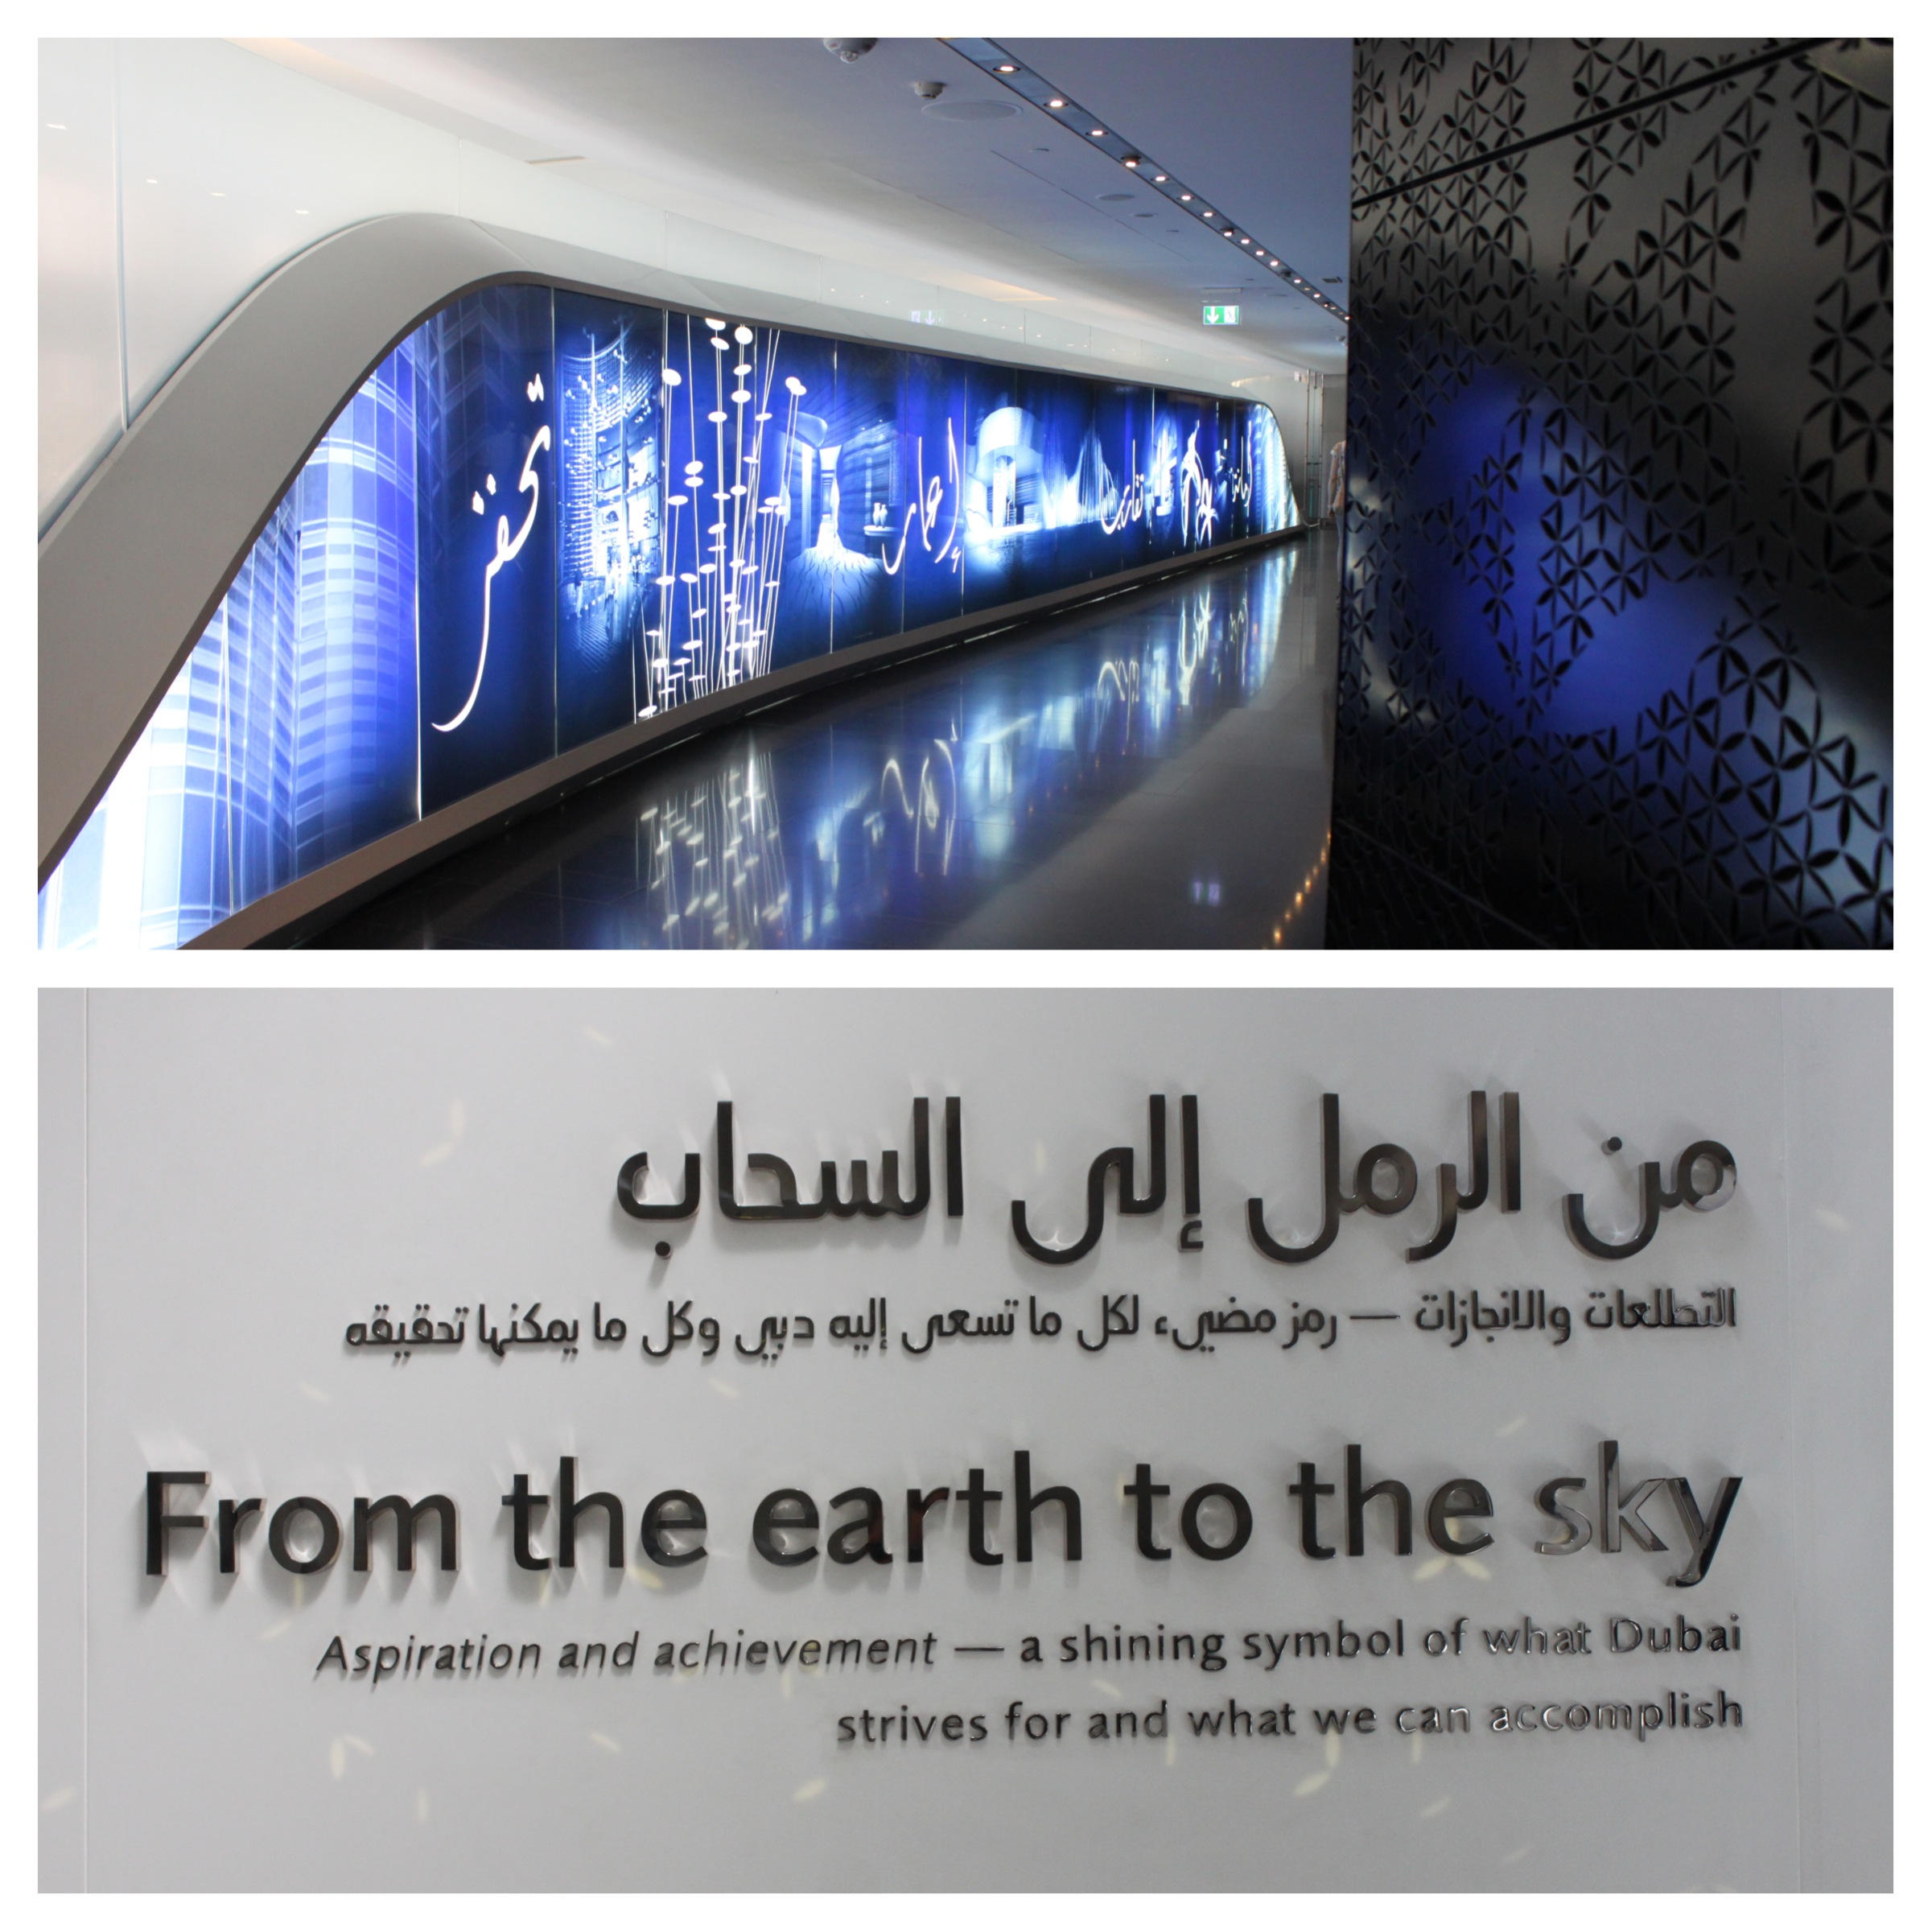 burj khalifa, from the earth to the sky